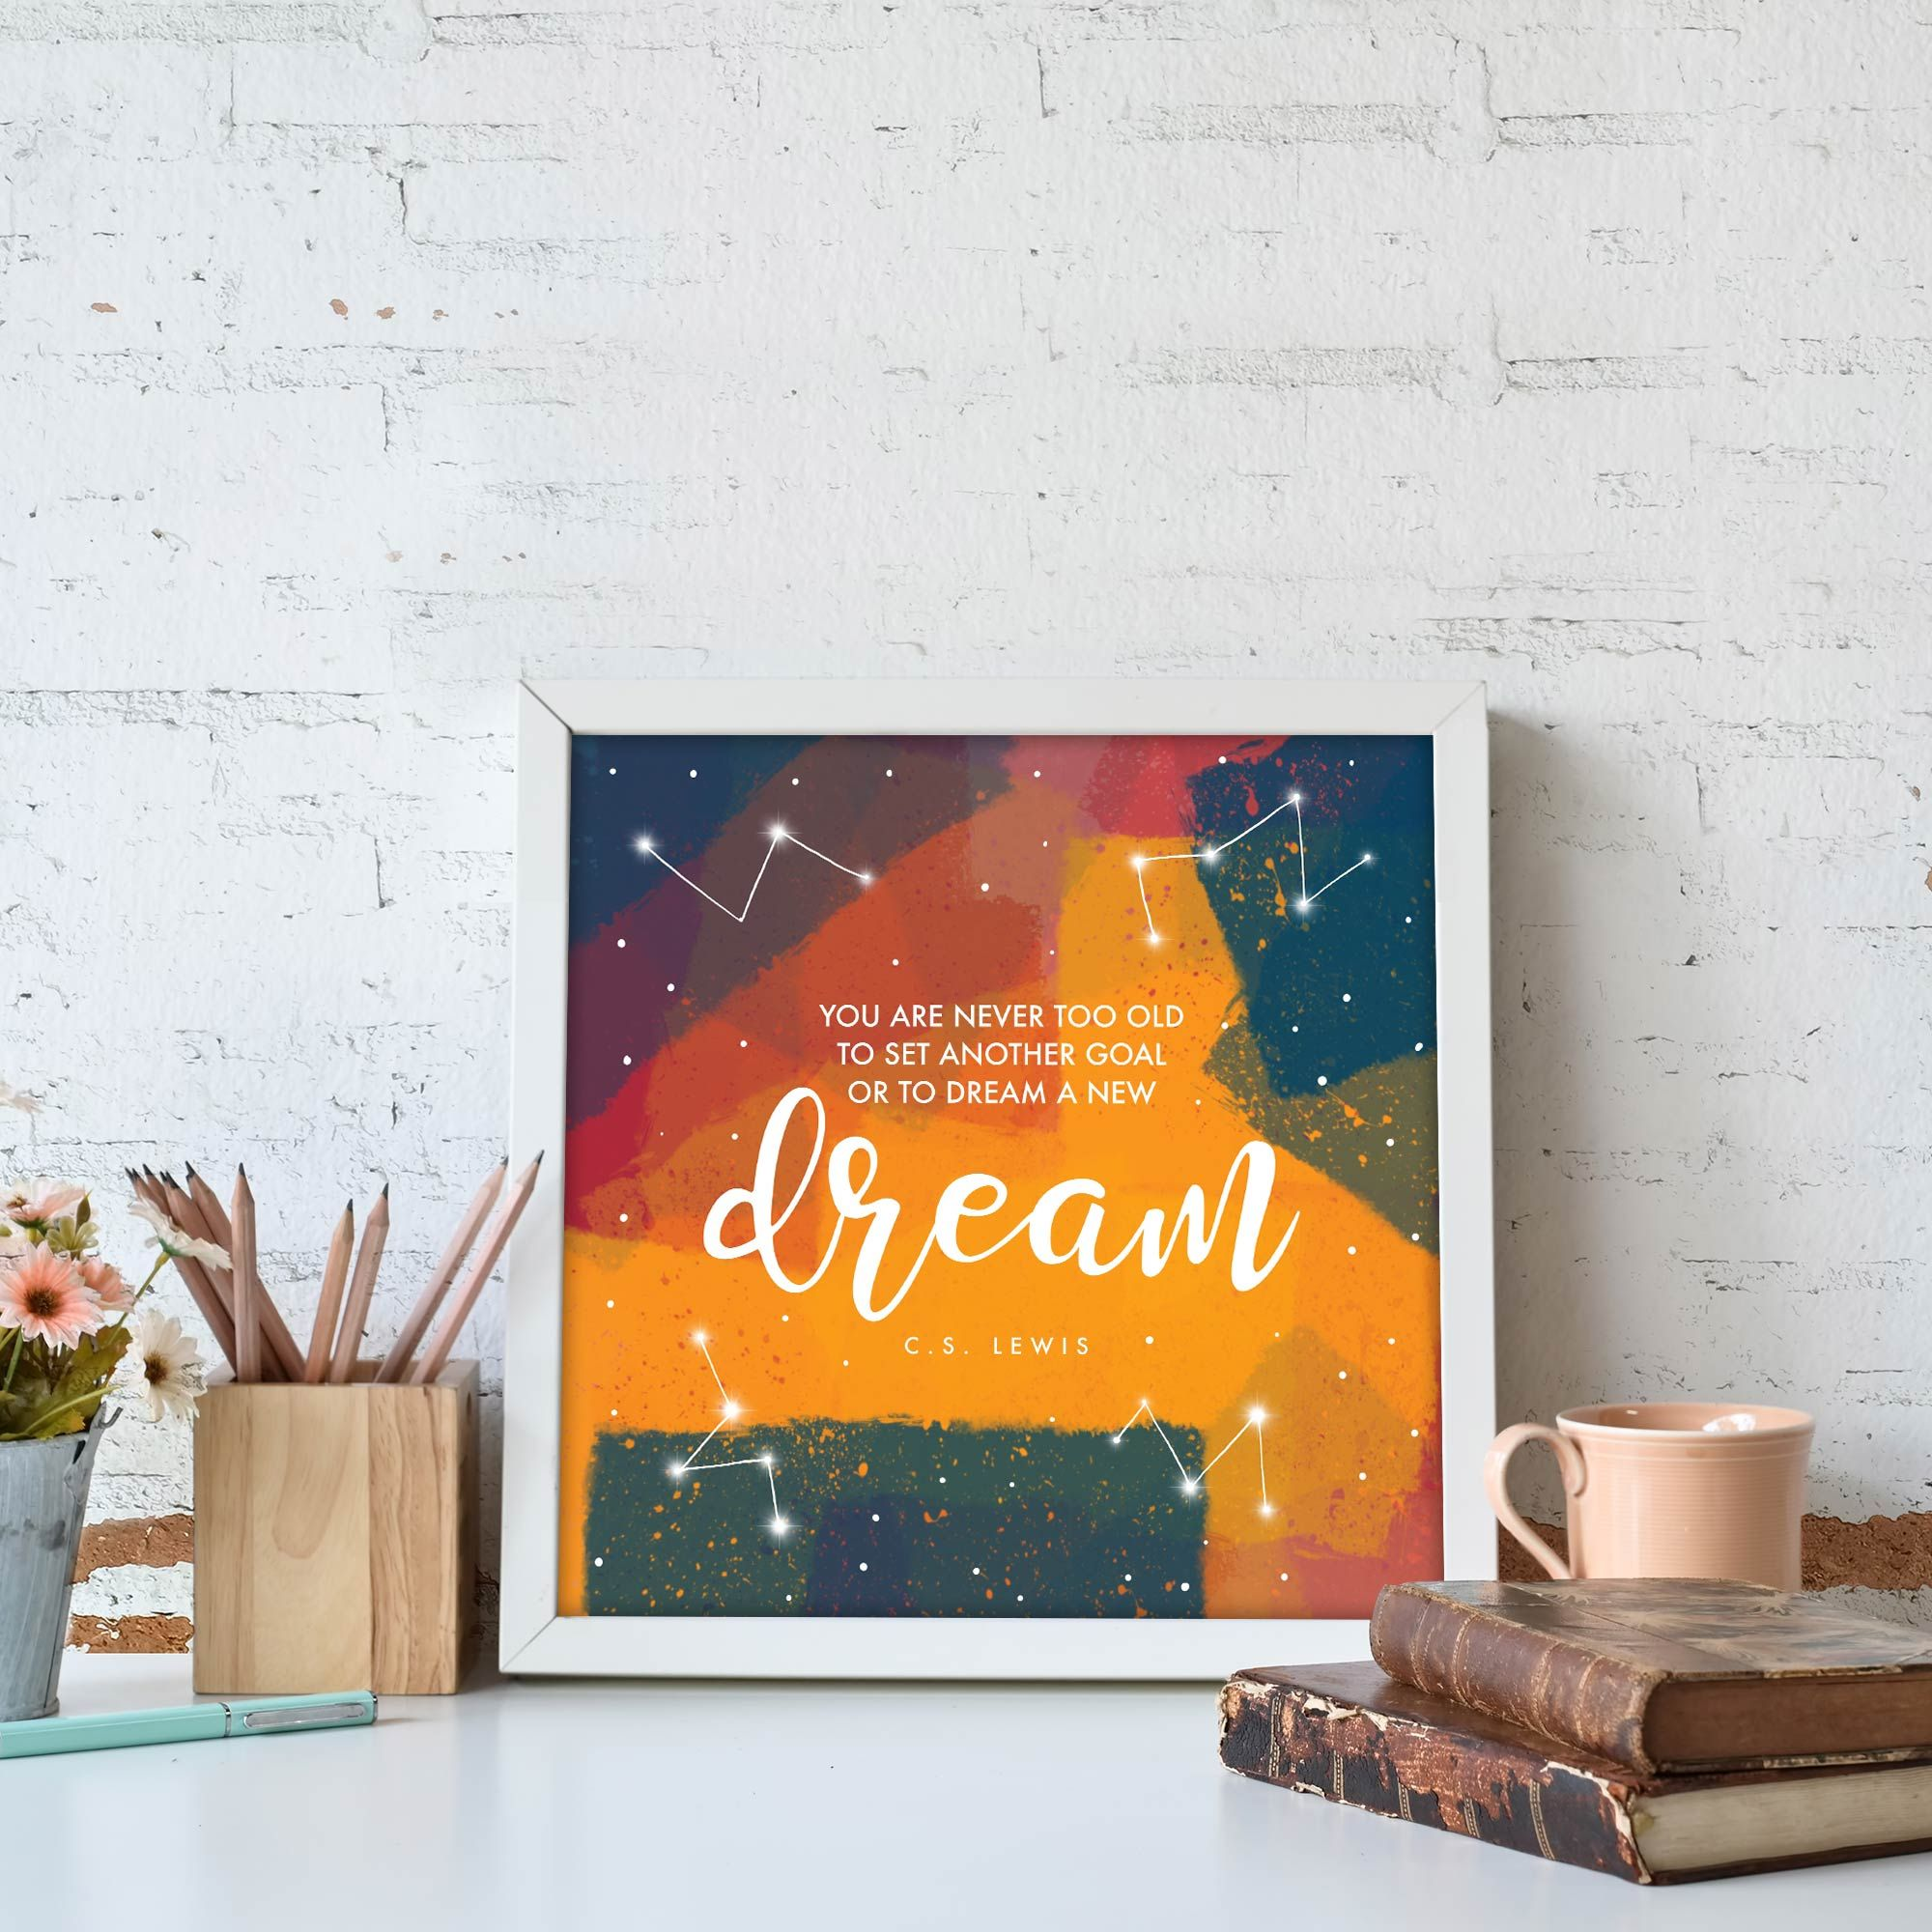 Brighten up any room with our Dream print! #etsyshop #printsforsale #woodcreativellc #walldecor #wallart #originalprints #illustration #dream #nurseryart #nursery #cslewis #office #officeart #quote